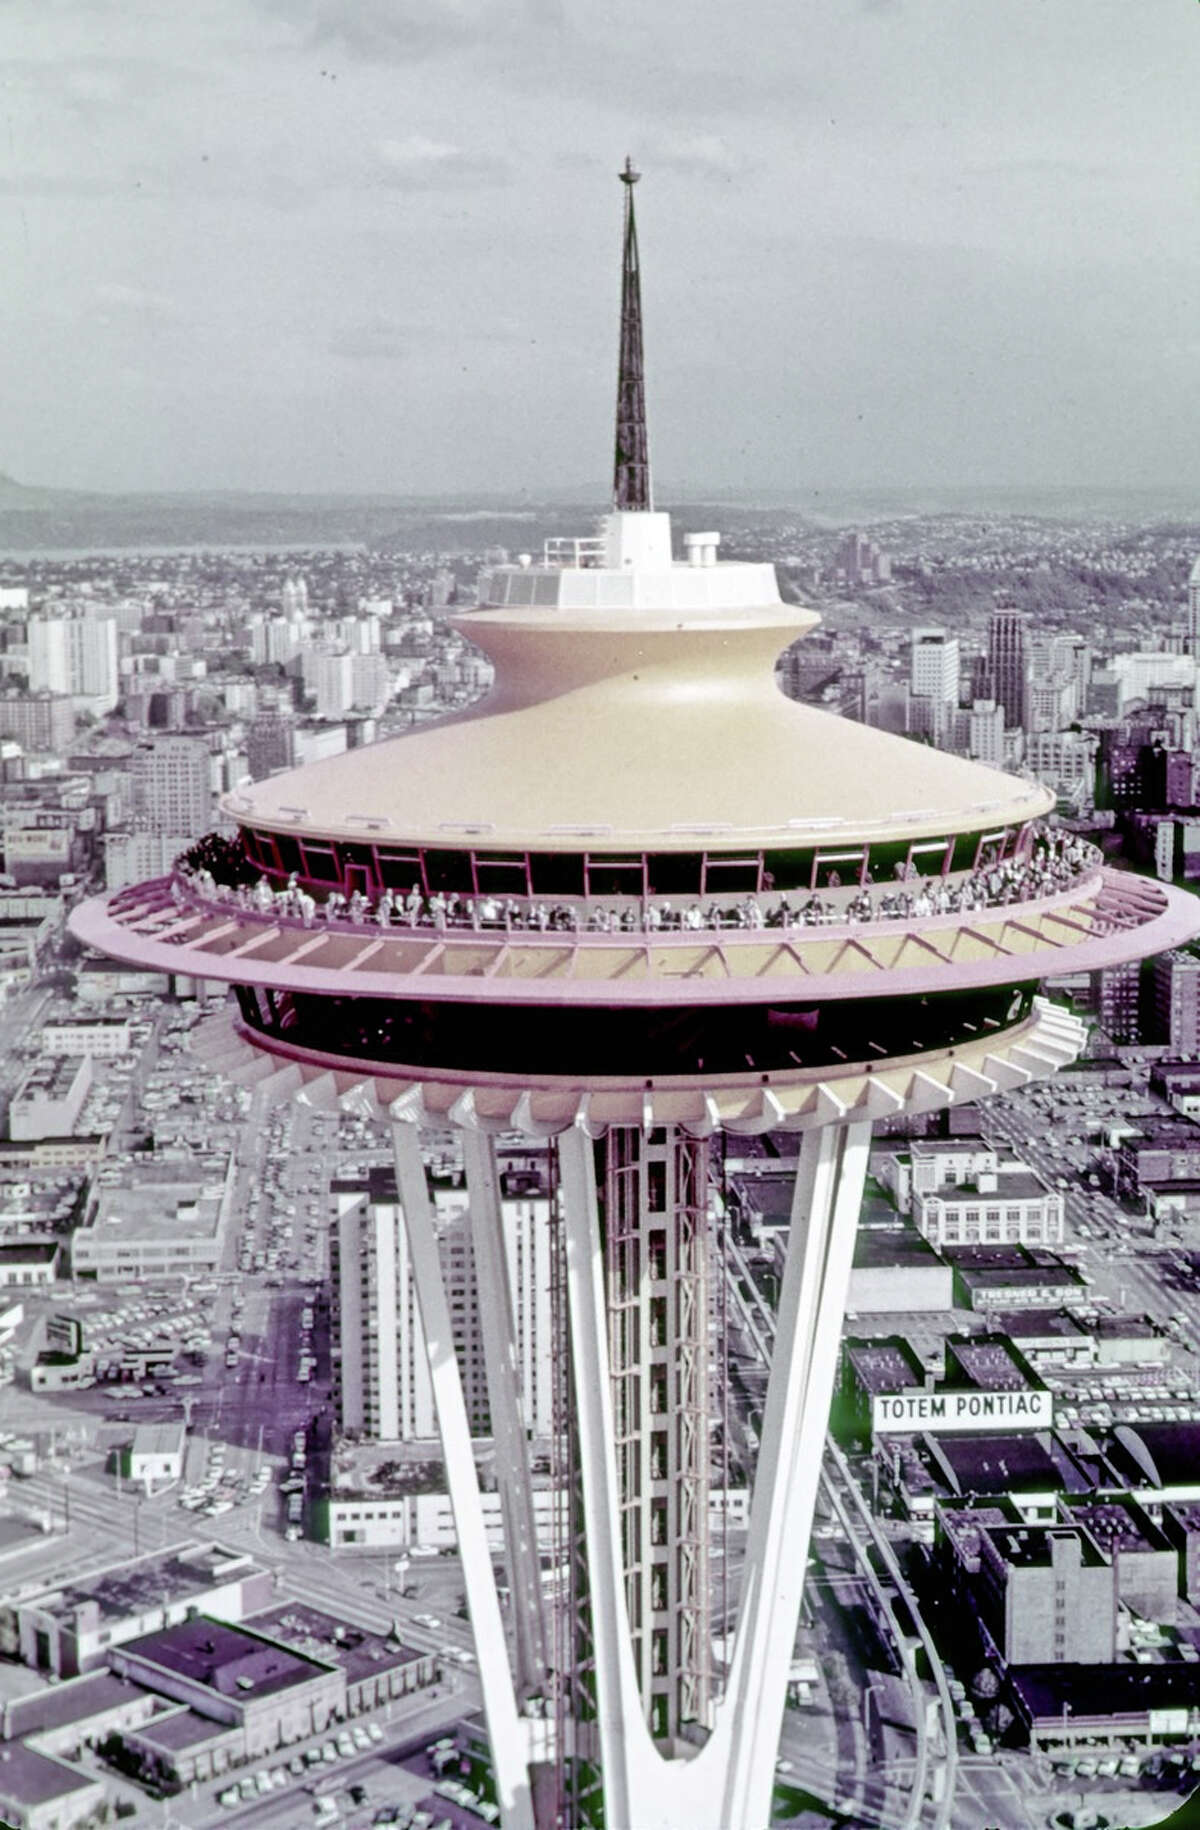 Century 21 / Close Up of Eye of [Space] Needle. Eastman Color Film. [Seattle World's Fair] Date: 1962. Item No: 73121